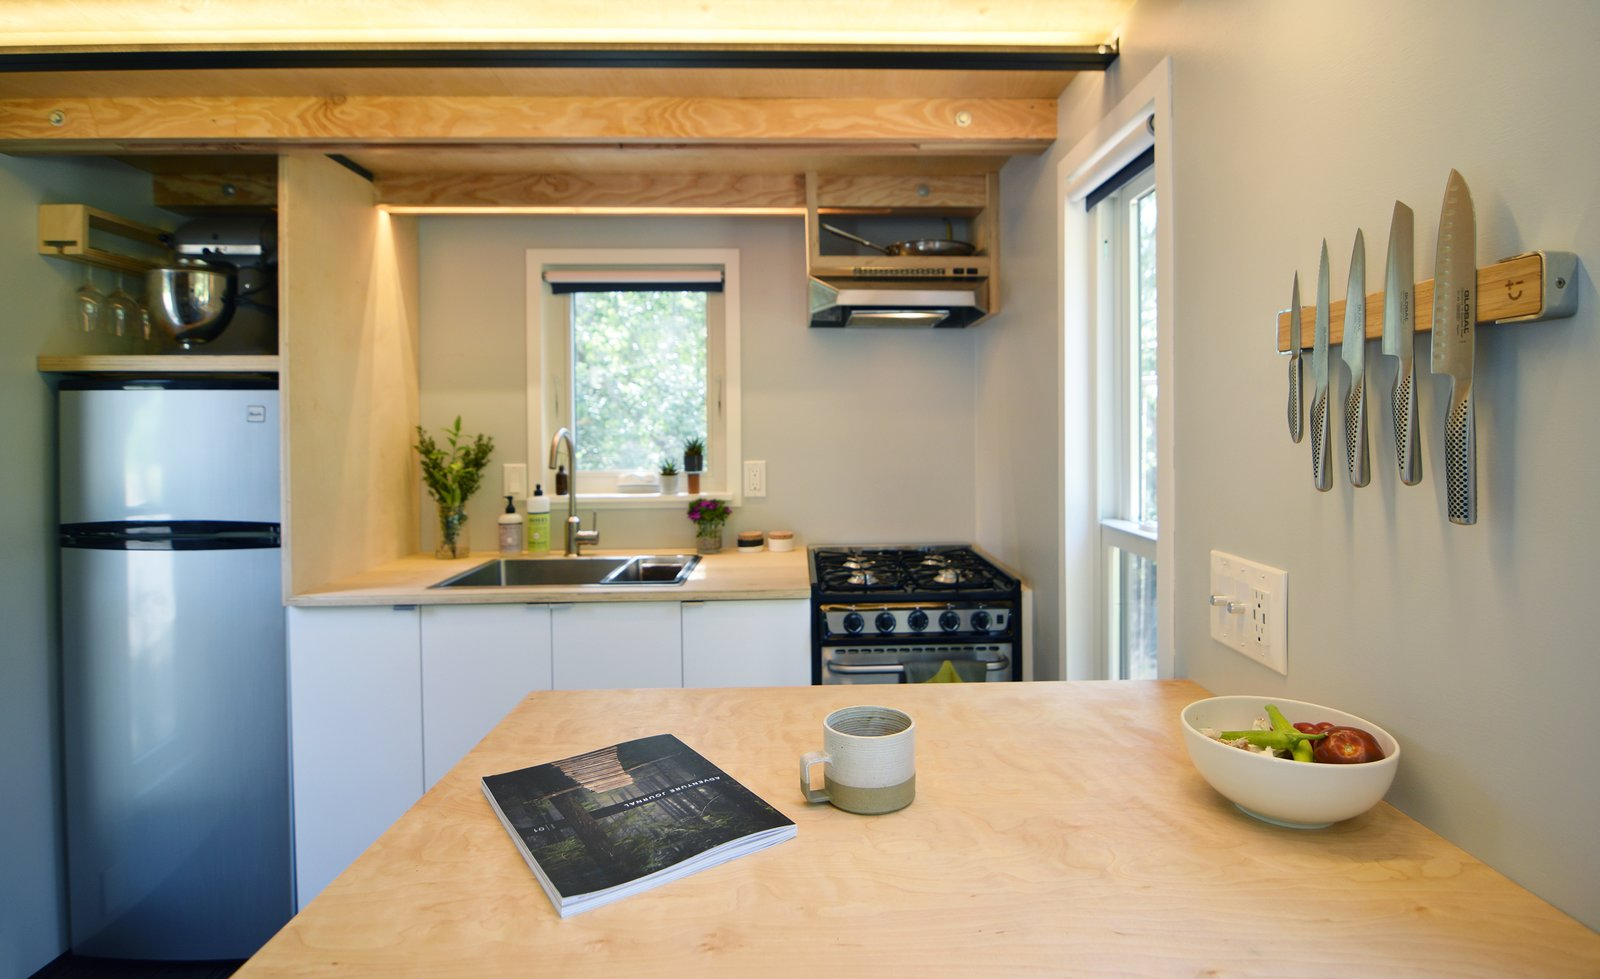 A small but fully-equipped kitchen.